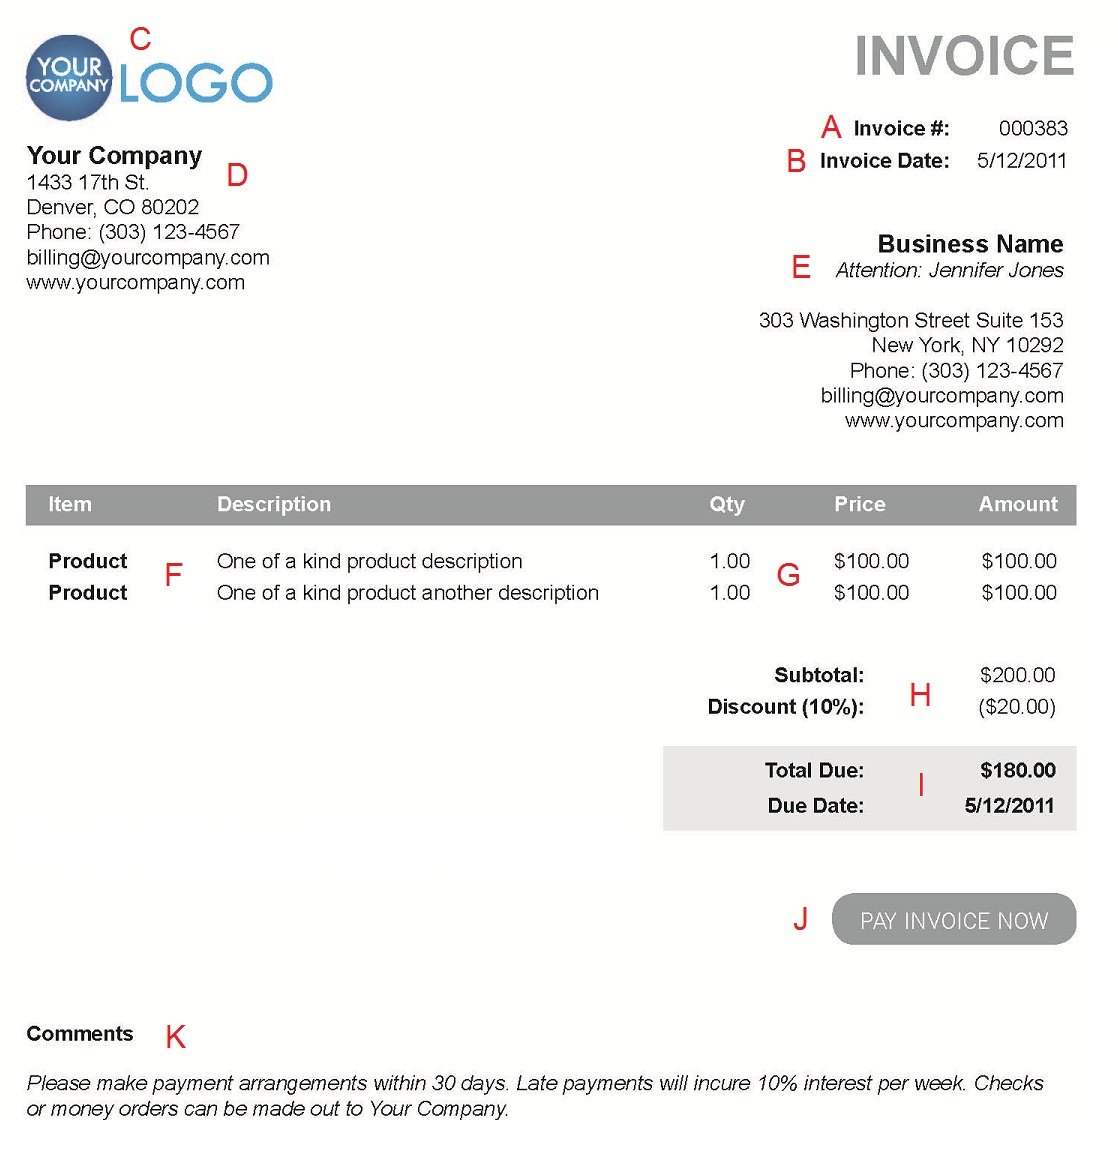 Pxworkoutfreeus  Winning The  Different Sections Of An Electronic Payment Invoice With Handsome A  With Comely Reconcile Invoices Definition Also Invoice Price For Mazda Cx In Addition How To Find Vehicle Invoice Price And  Nissan Rogue Invoice Price As Well As How To Invoice Paypal Additionally Express Invoice Software From Paysimplecom With Pxworkoutfreeus  Handsome The  Different Sections Of An Electronic Payment Invoice With Comely A  And Winning Reconcile Invoices Definition Also Invoice Price For Mazda Cx In Addition How To Find Vehicle Invoice Price From Paysimplecom